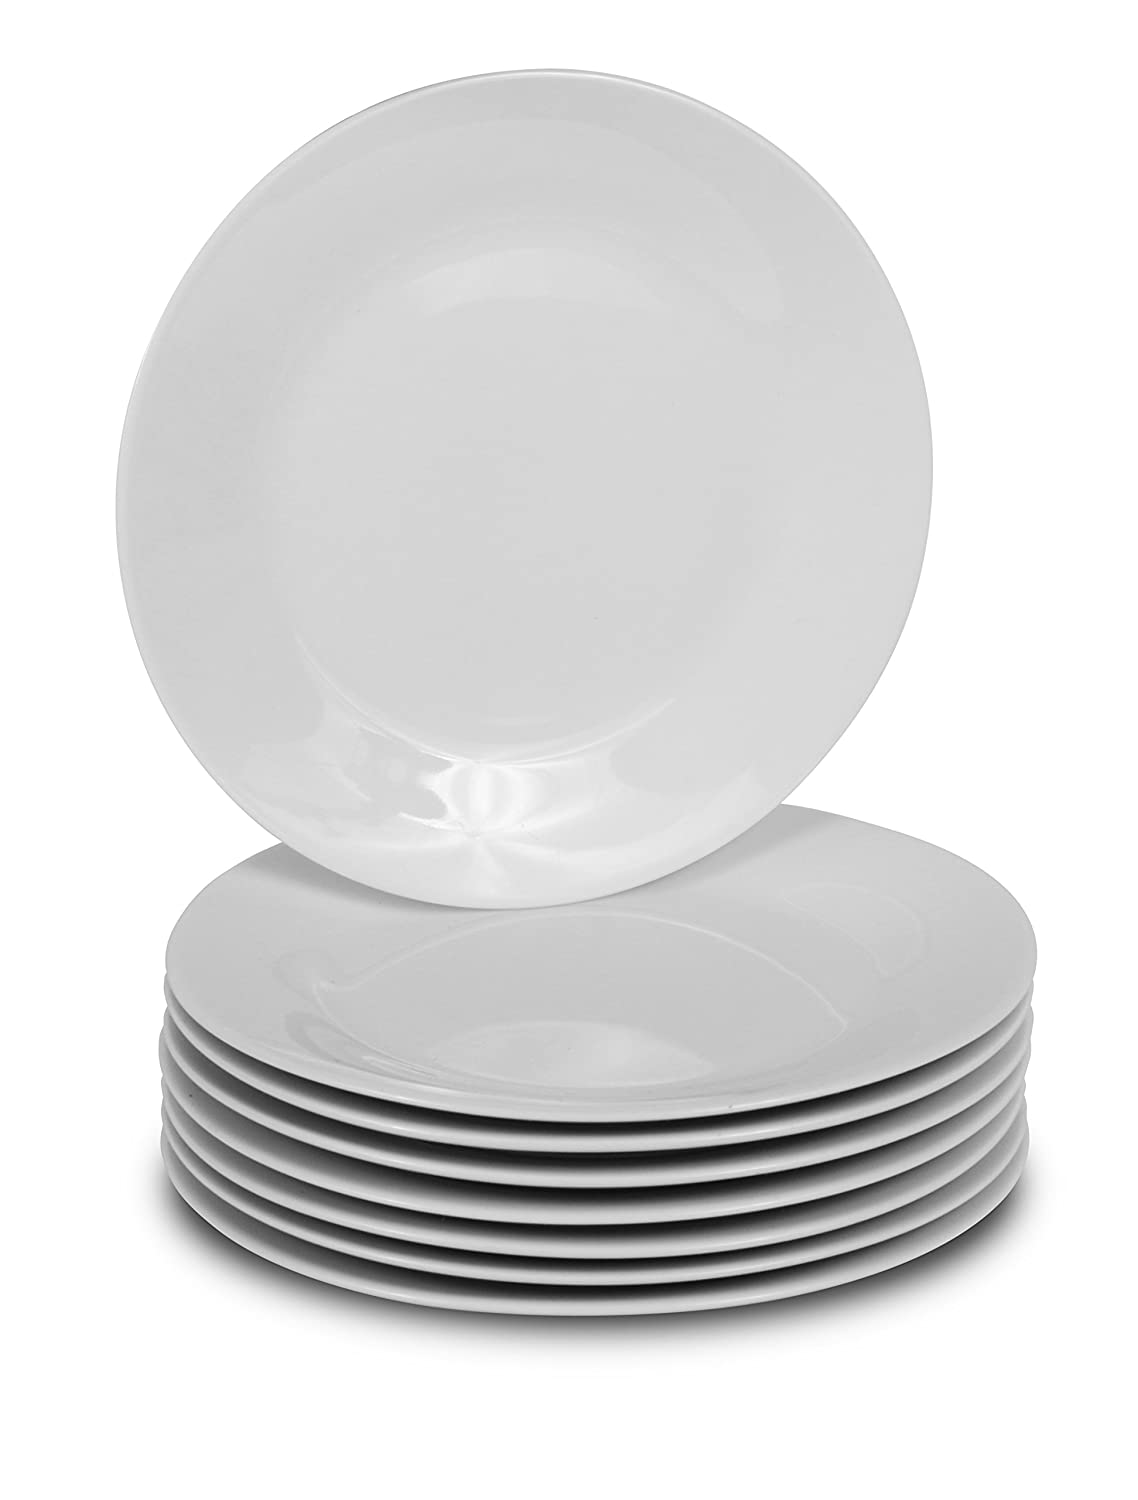 Klikel 8 White Dinner Plates | Porcelain Round Dinnerware | 10.5-inch Classic Solid Coupe Style Plate Set